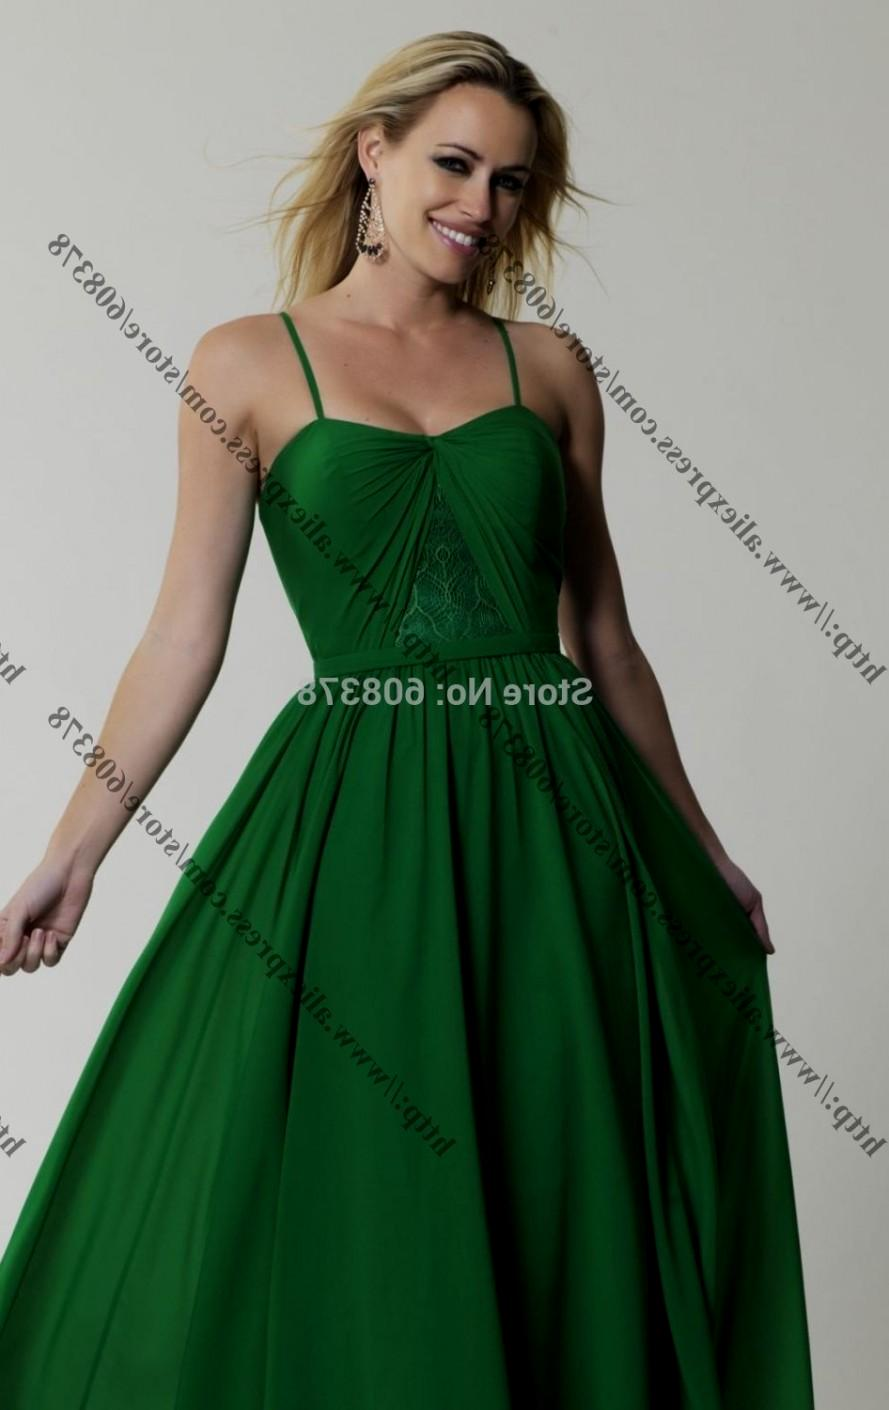 Plus Size Green Lace Dress : Make You Look Thinner